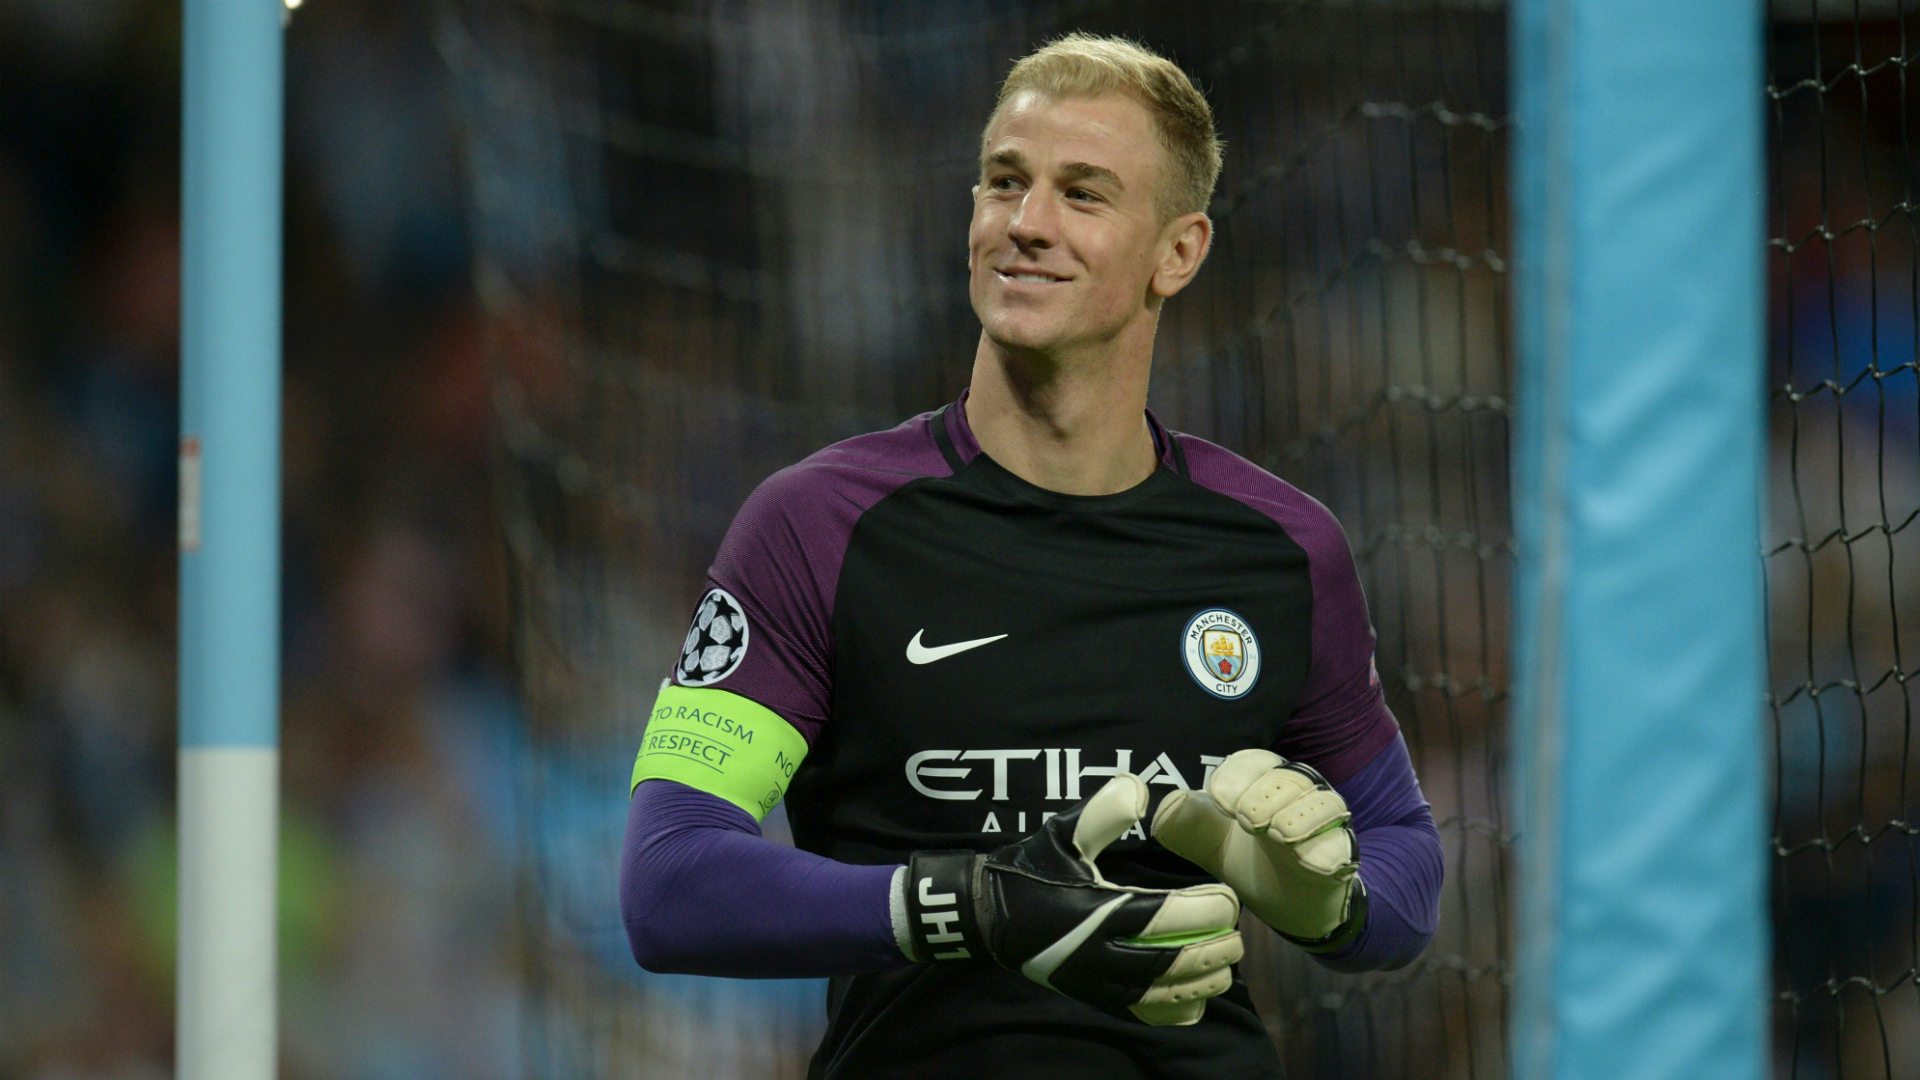 Hart: I was fairly concerned when Guardiola arrived at Man City